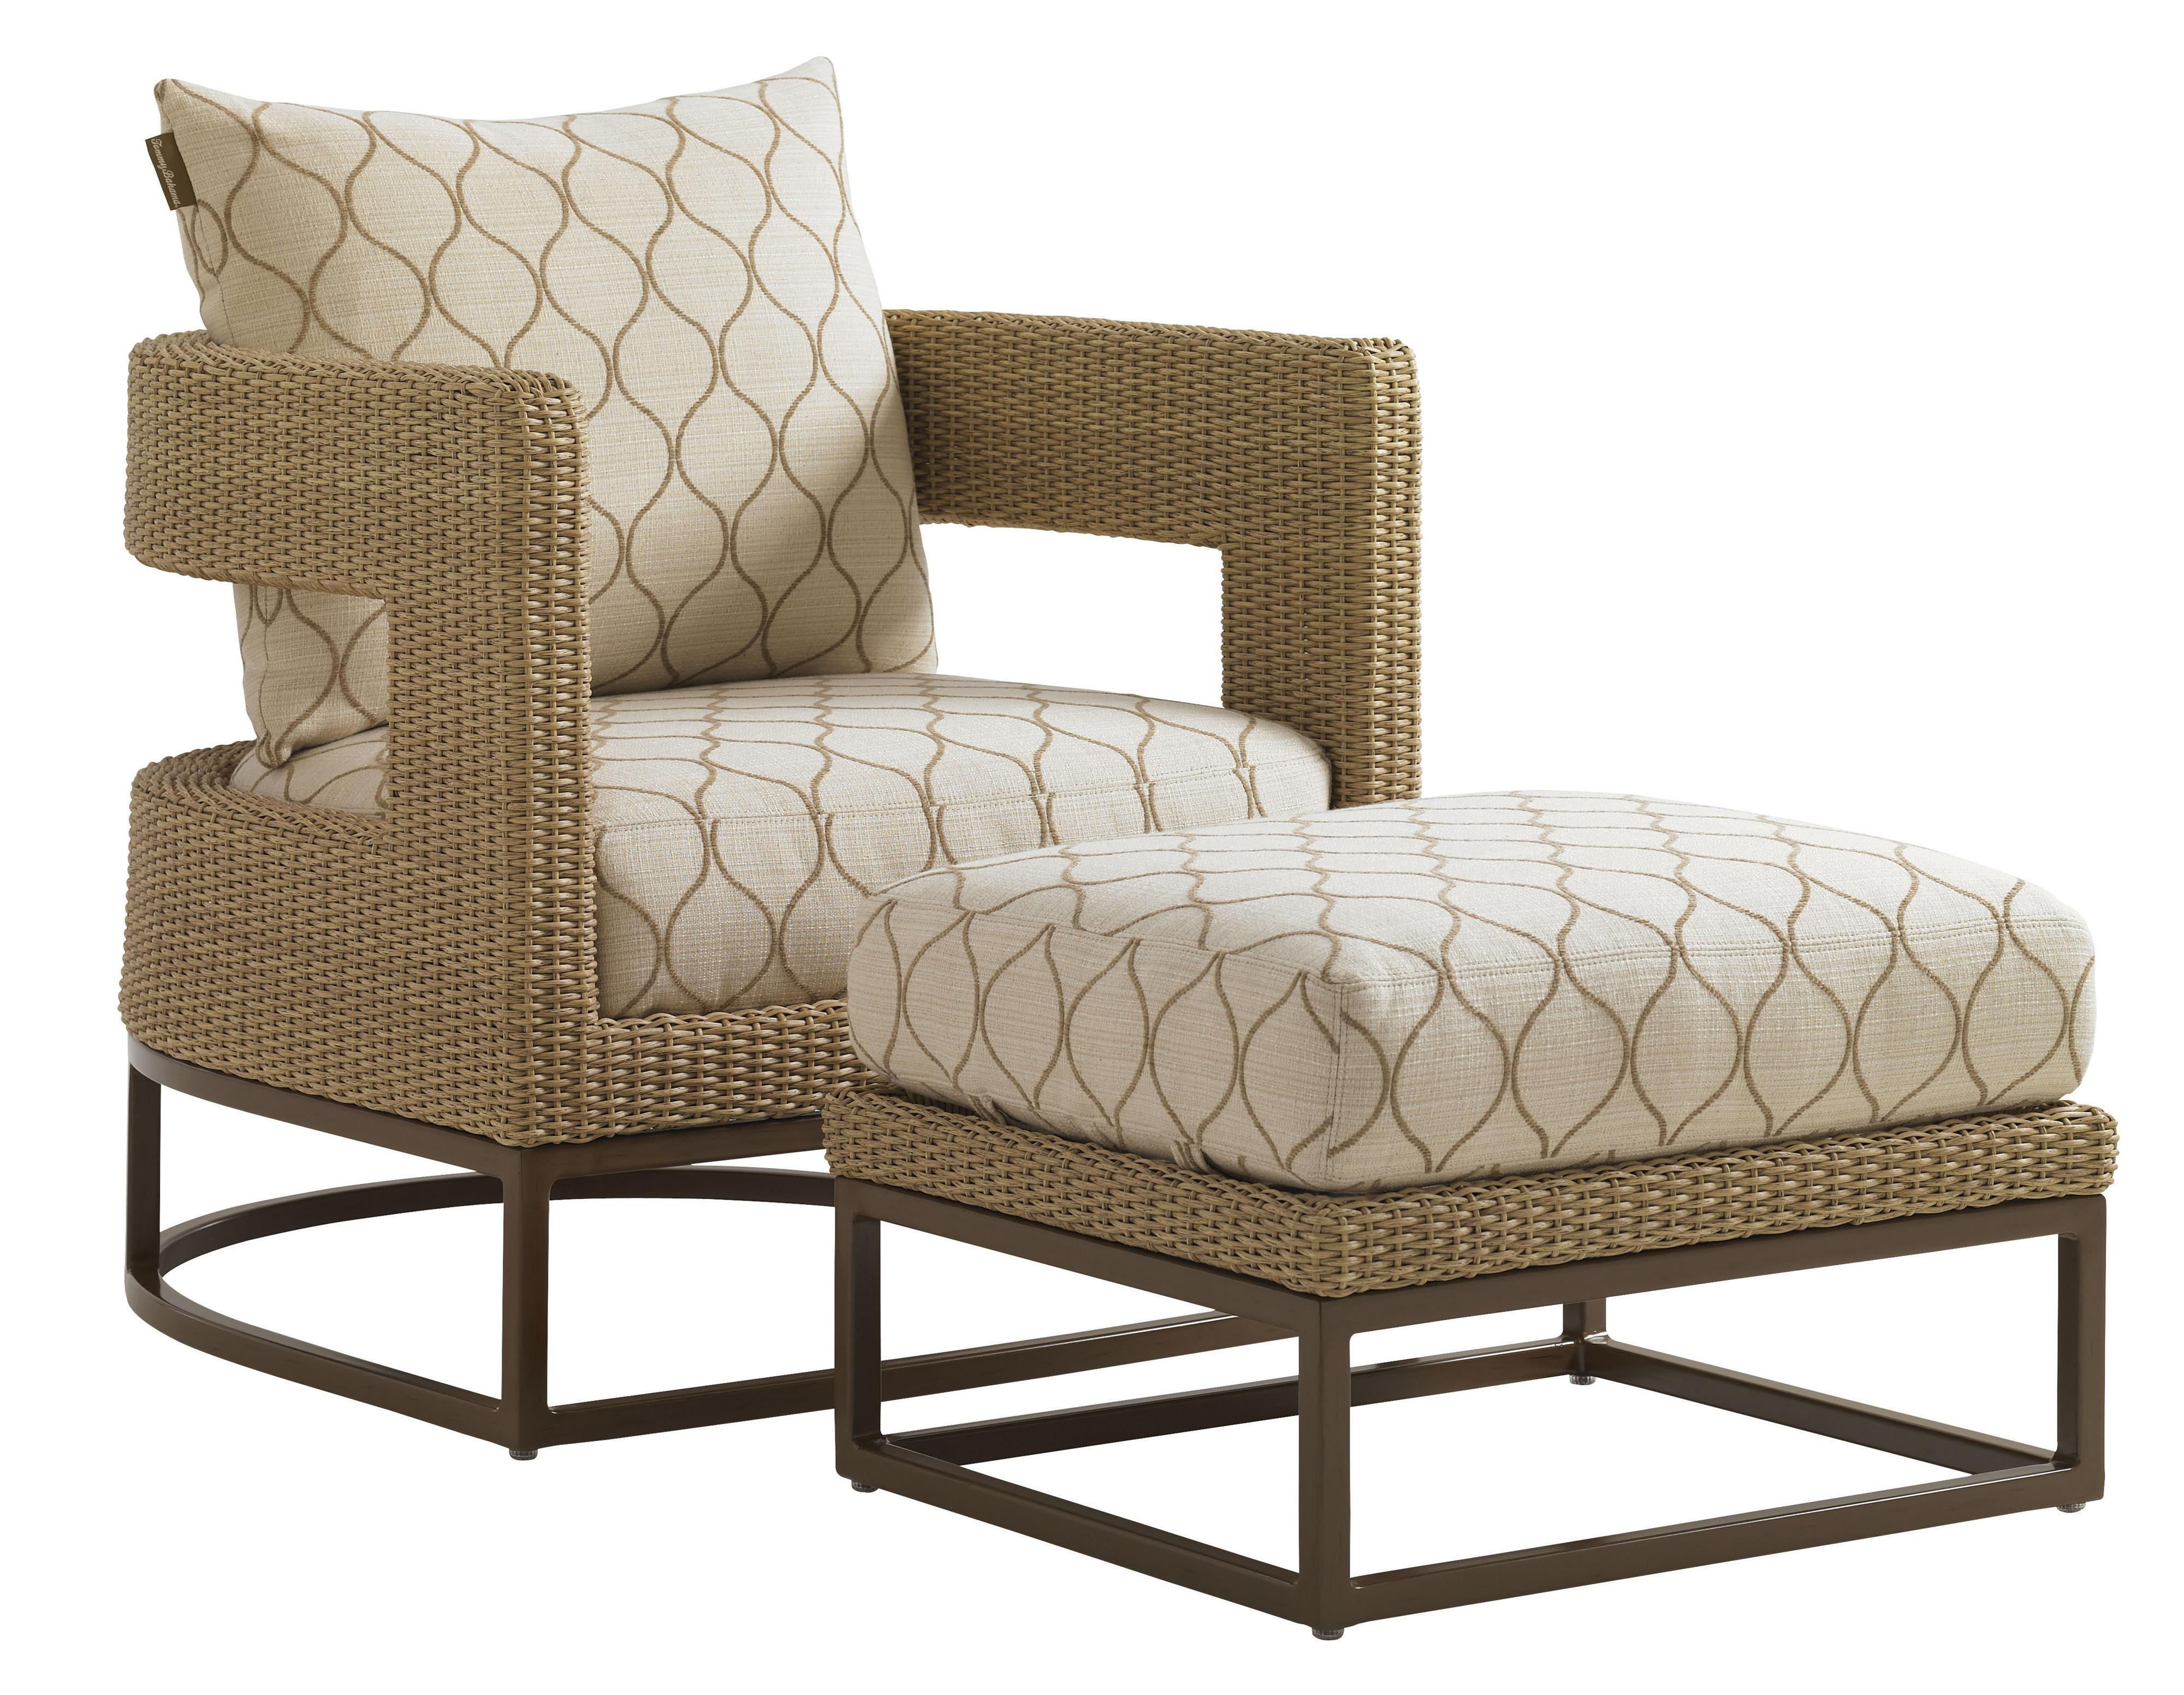 outdoor chair and ottoman spacesaver high tommy bahama living aviano wicker